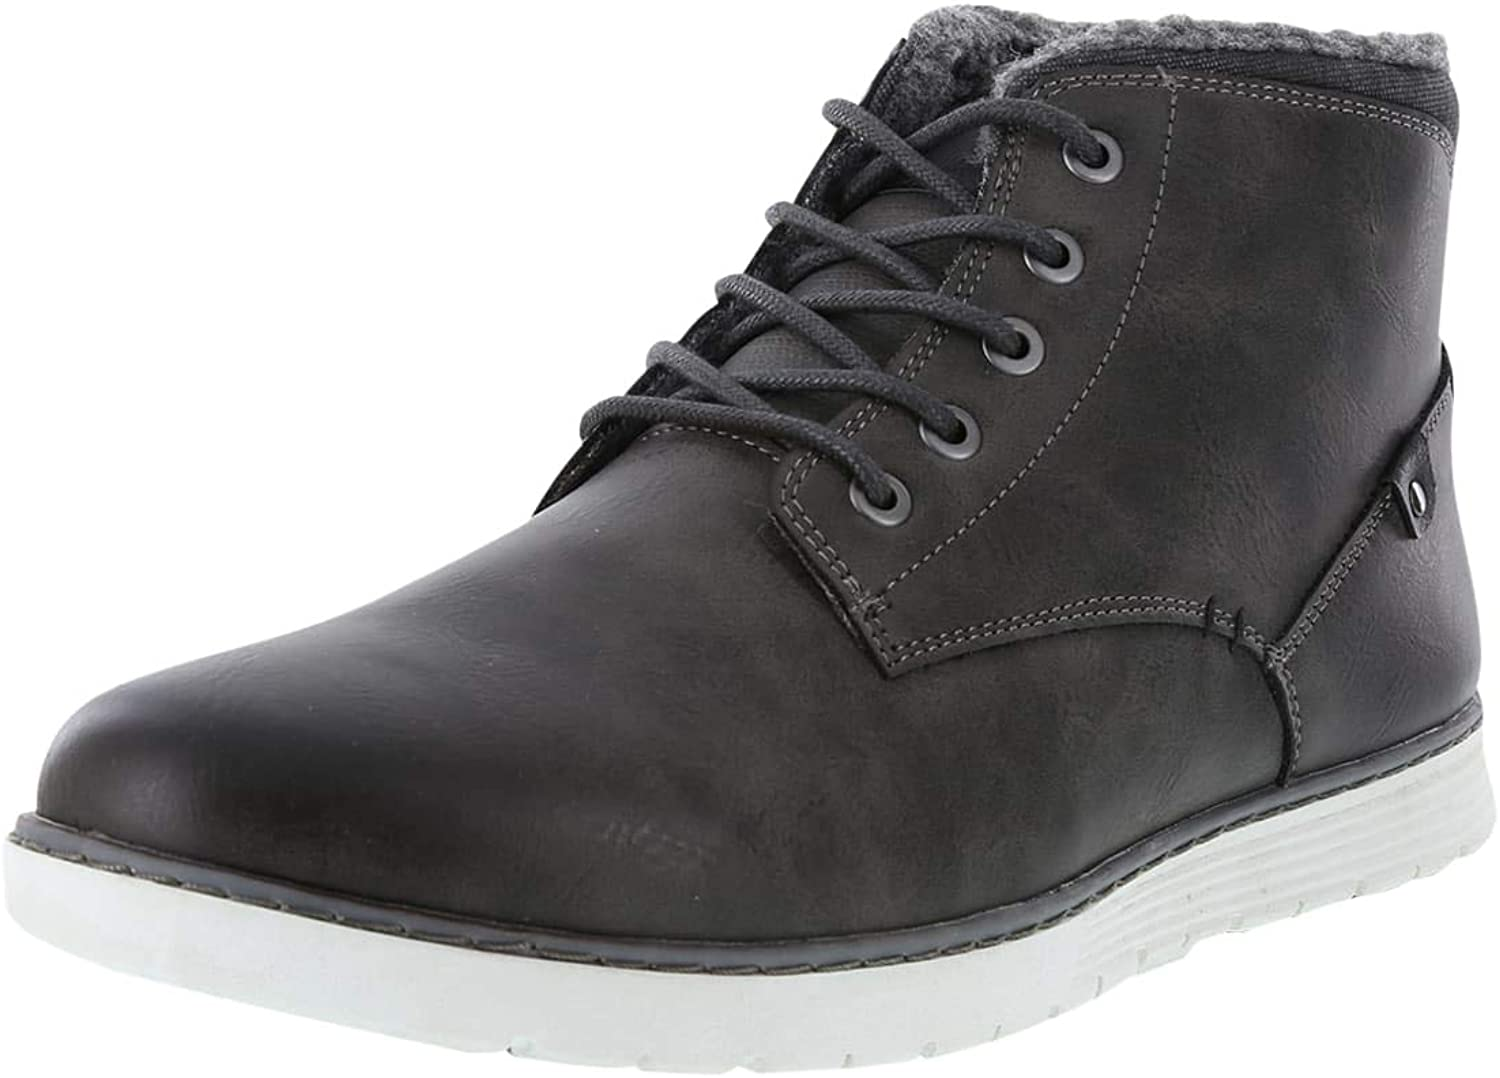 5f965a40d02 Dexter Men's Plain-Toe Boot Endo Fleece-Lined nawtit6615-New Shoes ...